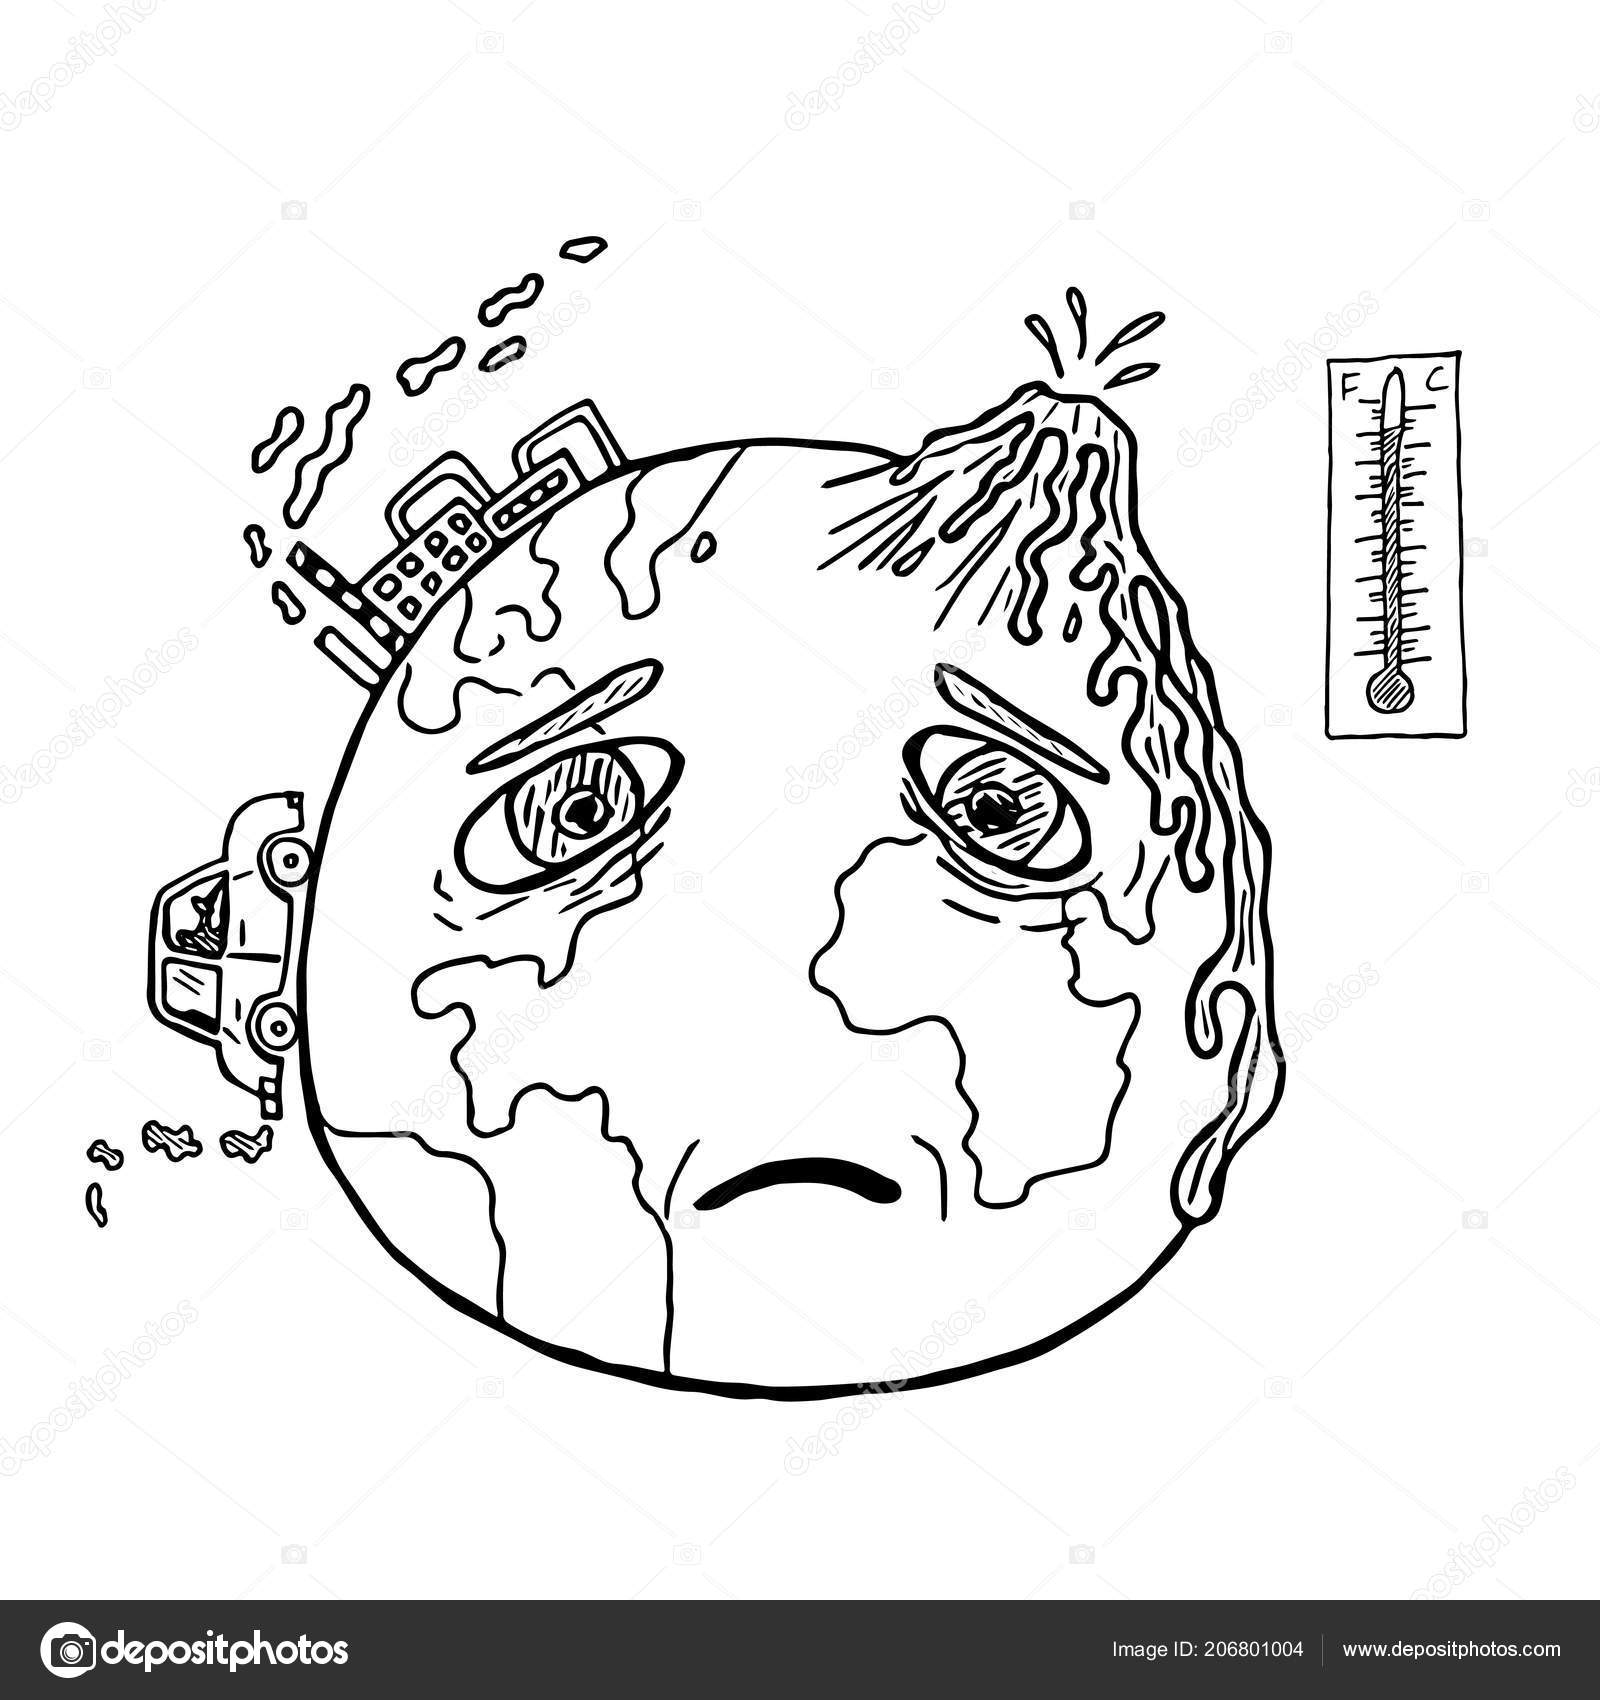 Hand Drawn Planet Earth Sad Face Global Warming Pollution